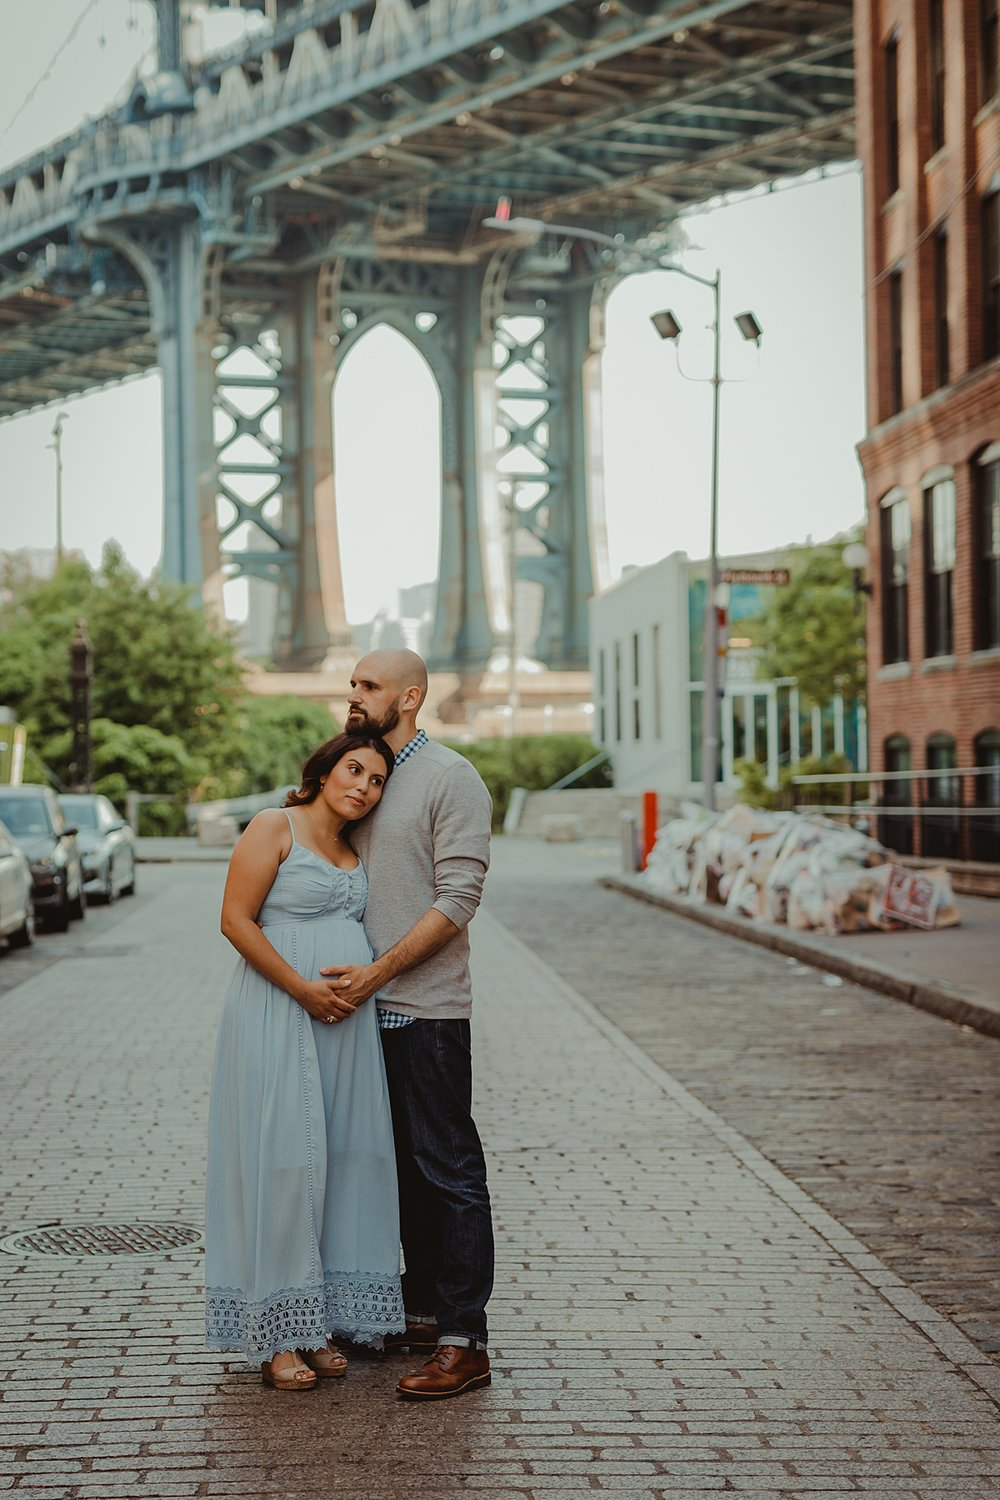 married couple stand in the middle of busy city street while husband holds wife's pregnant belly for outdoor maternity photo session with orange county family photographer krystil mcdowall photography